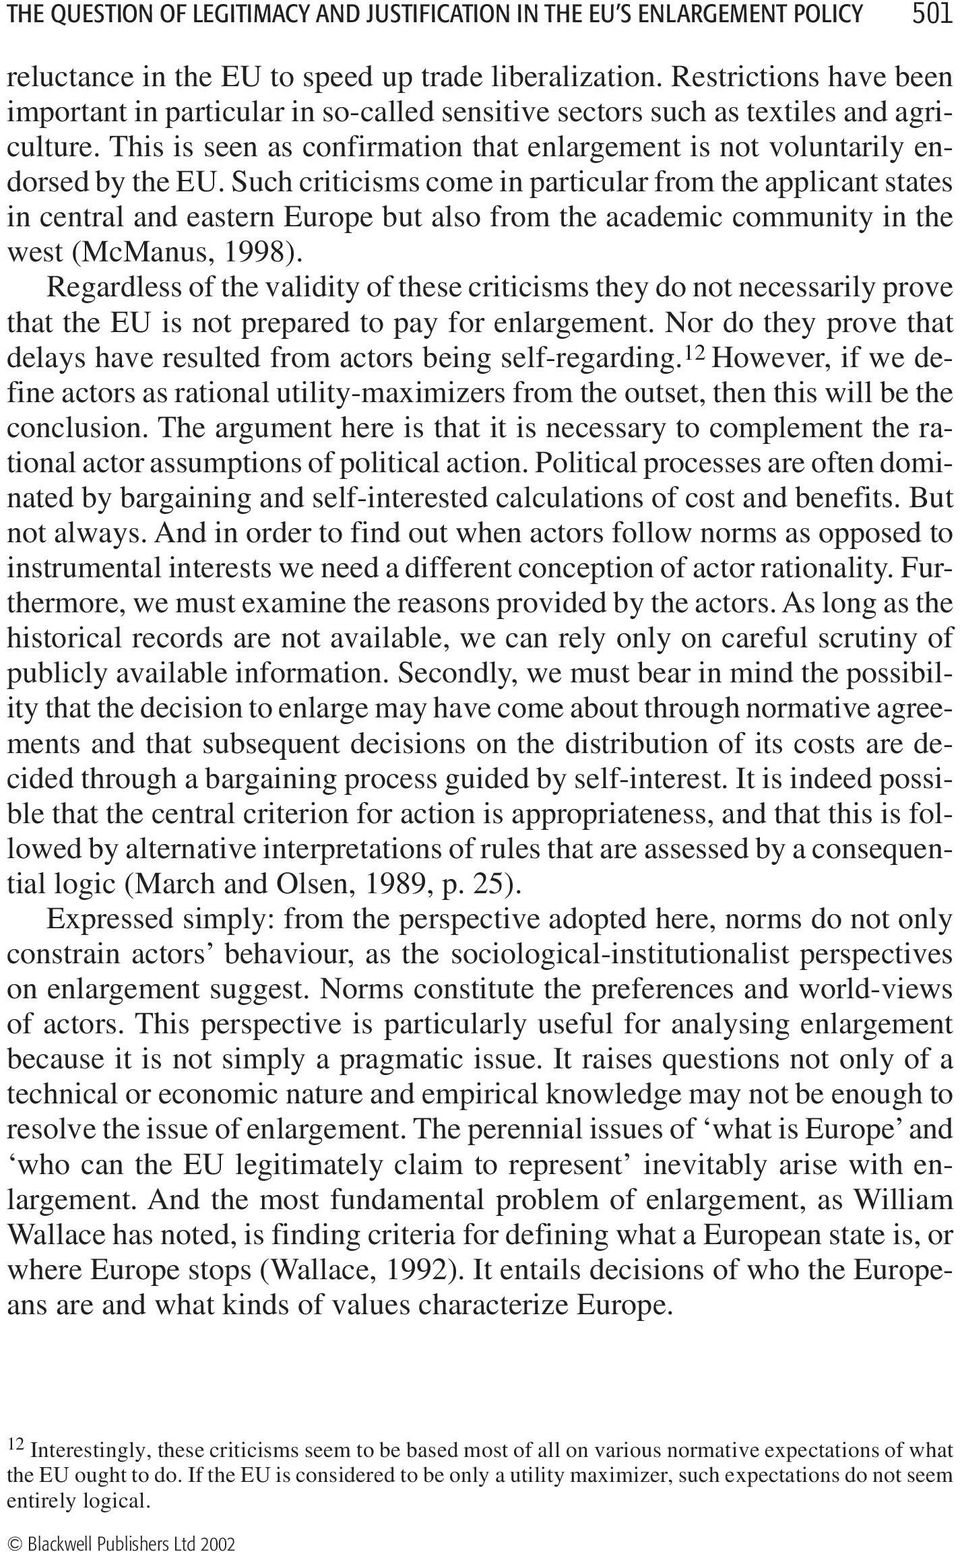 Such criticisms come in particular from the applicant states in central and eastern Europe but also from the academic community in the west (McManus, 1998).